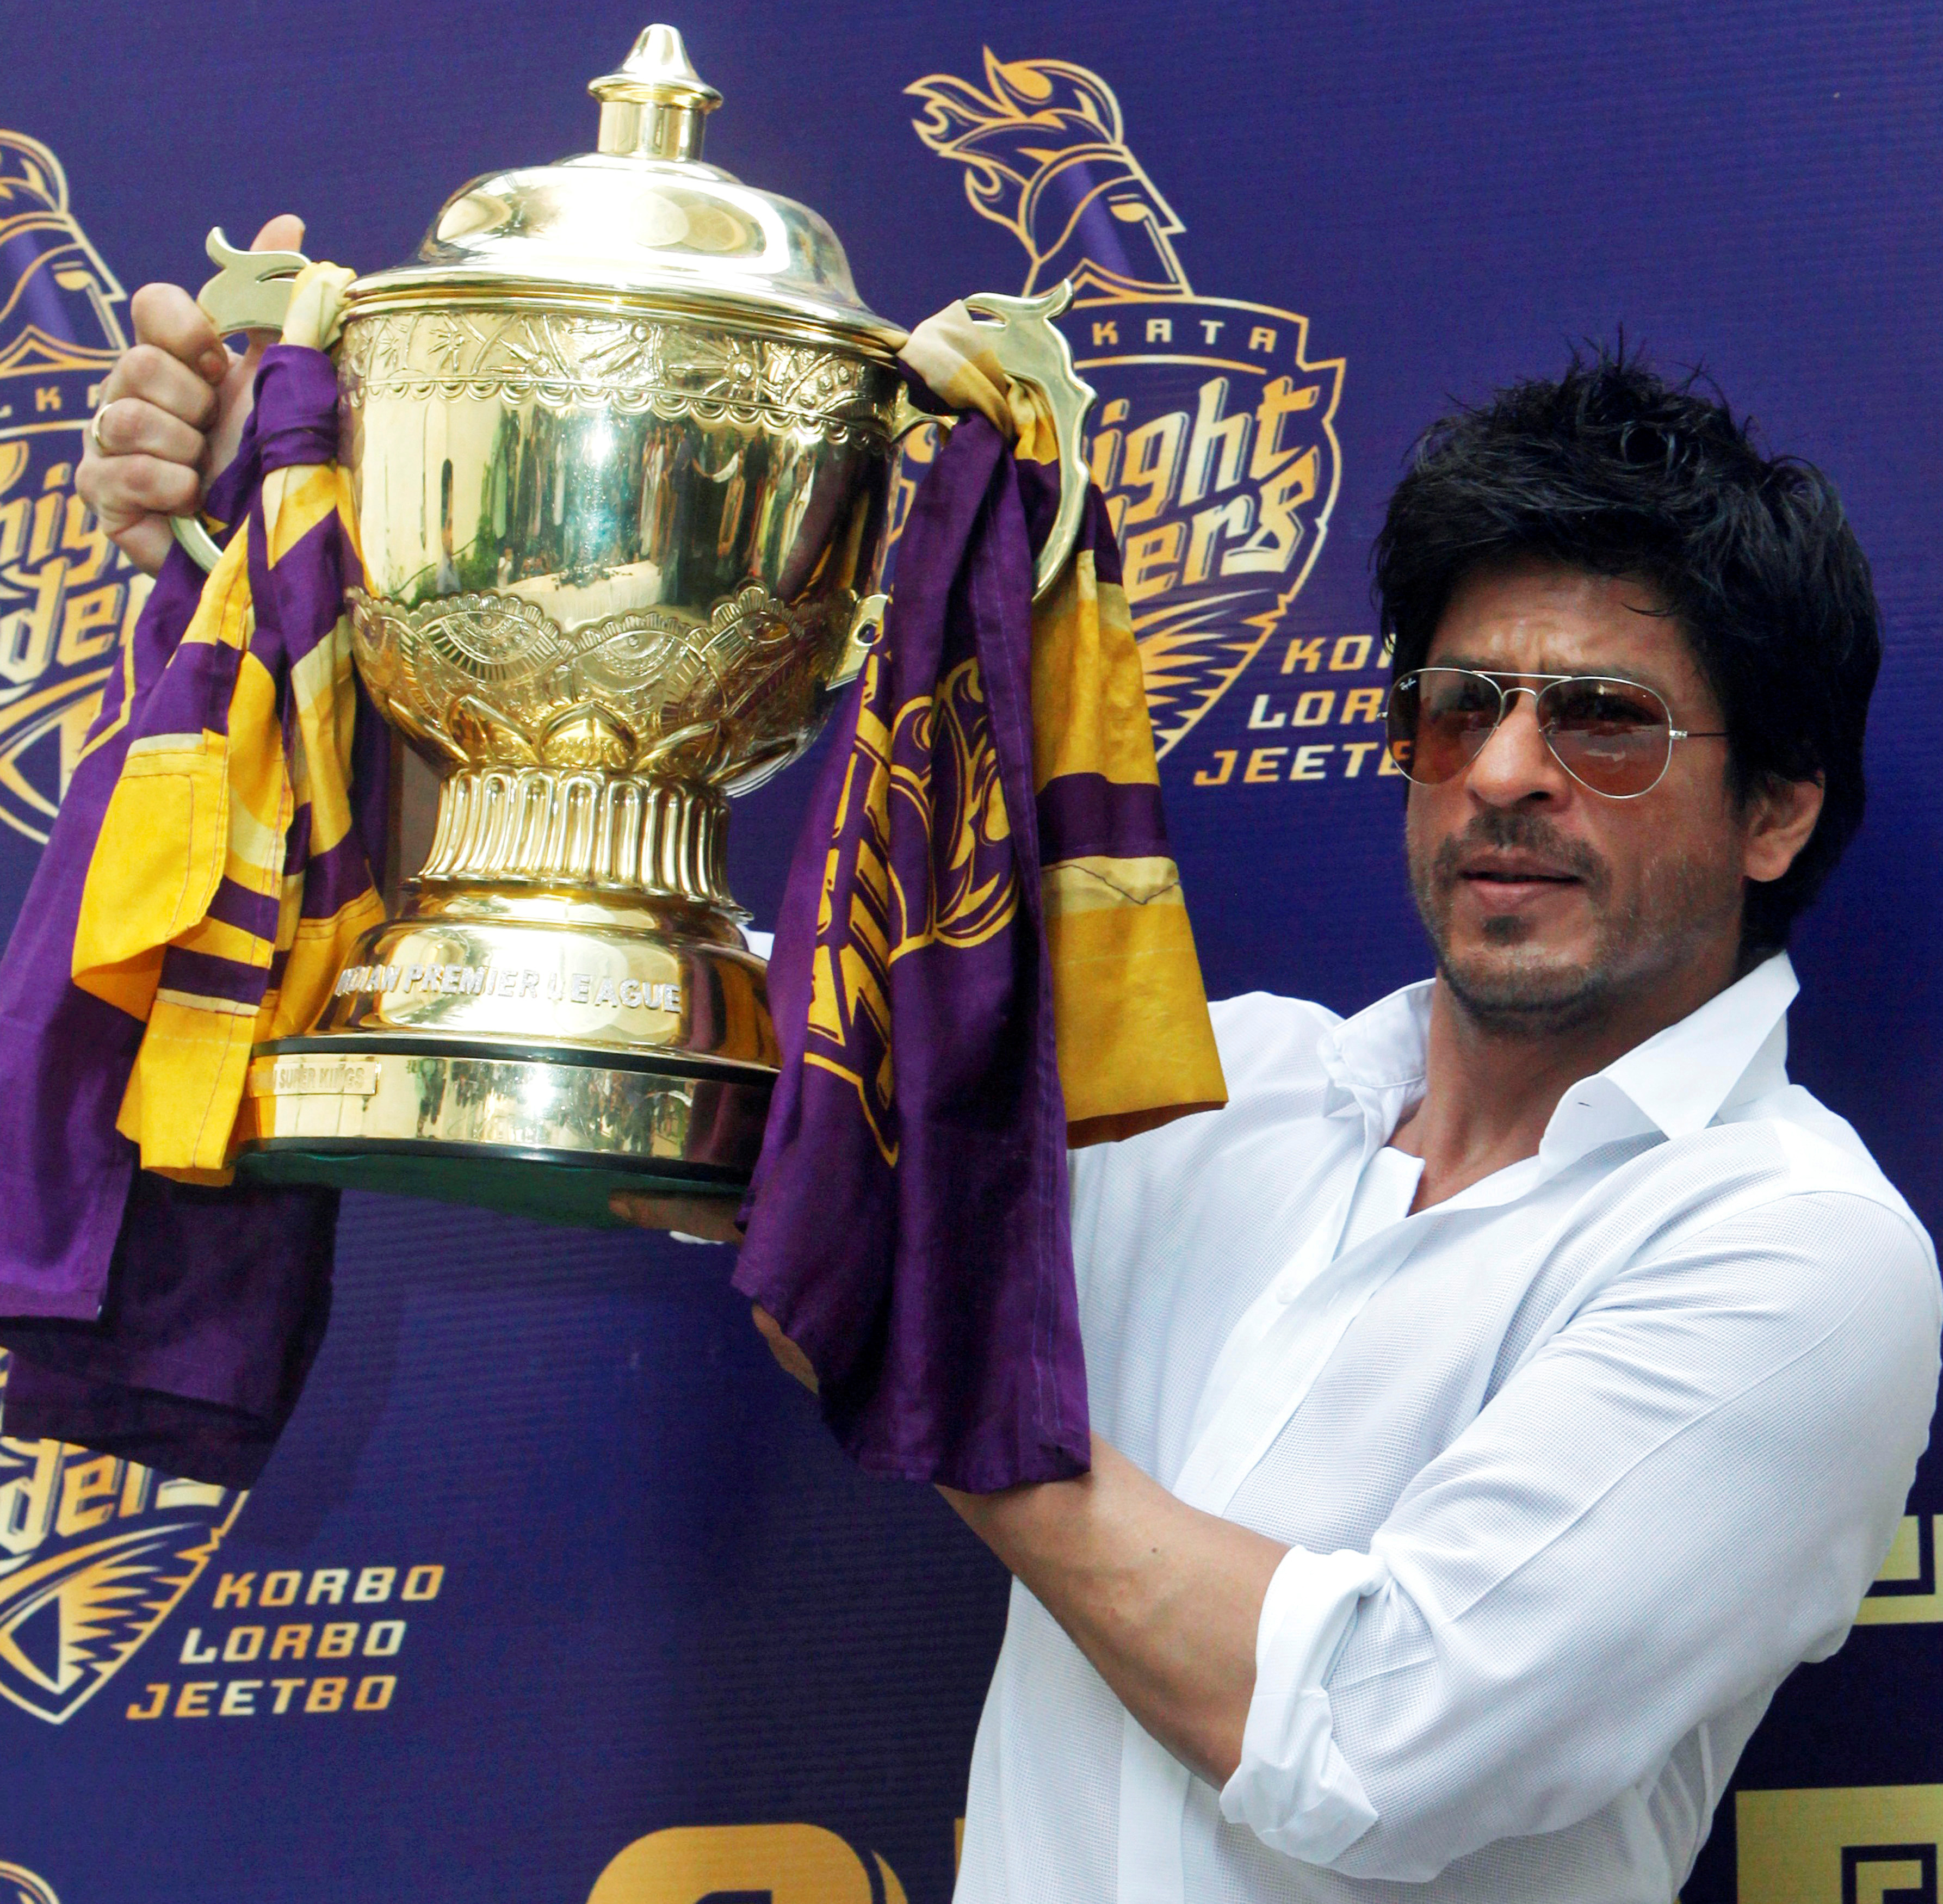 Bollywood actor Shah Rukh Khan displays the Indian Premier League (IPL) cricket trophy during a news conference at his residence in Mumbai May 30, 2012. Khan's Kolkata Knight Riders team won the 2012 IPL after defeating Chennai Super Kings on May 27. REUTERS/Vivek Prakash